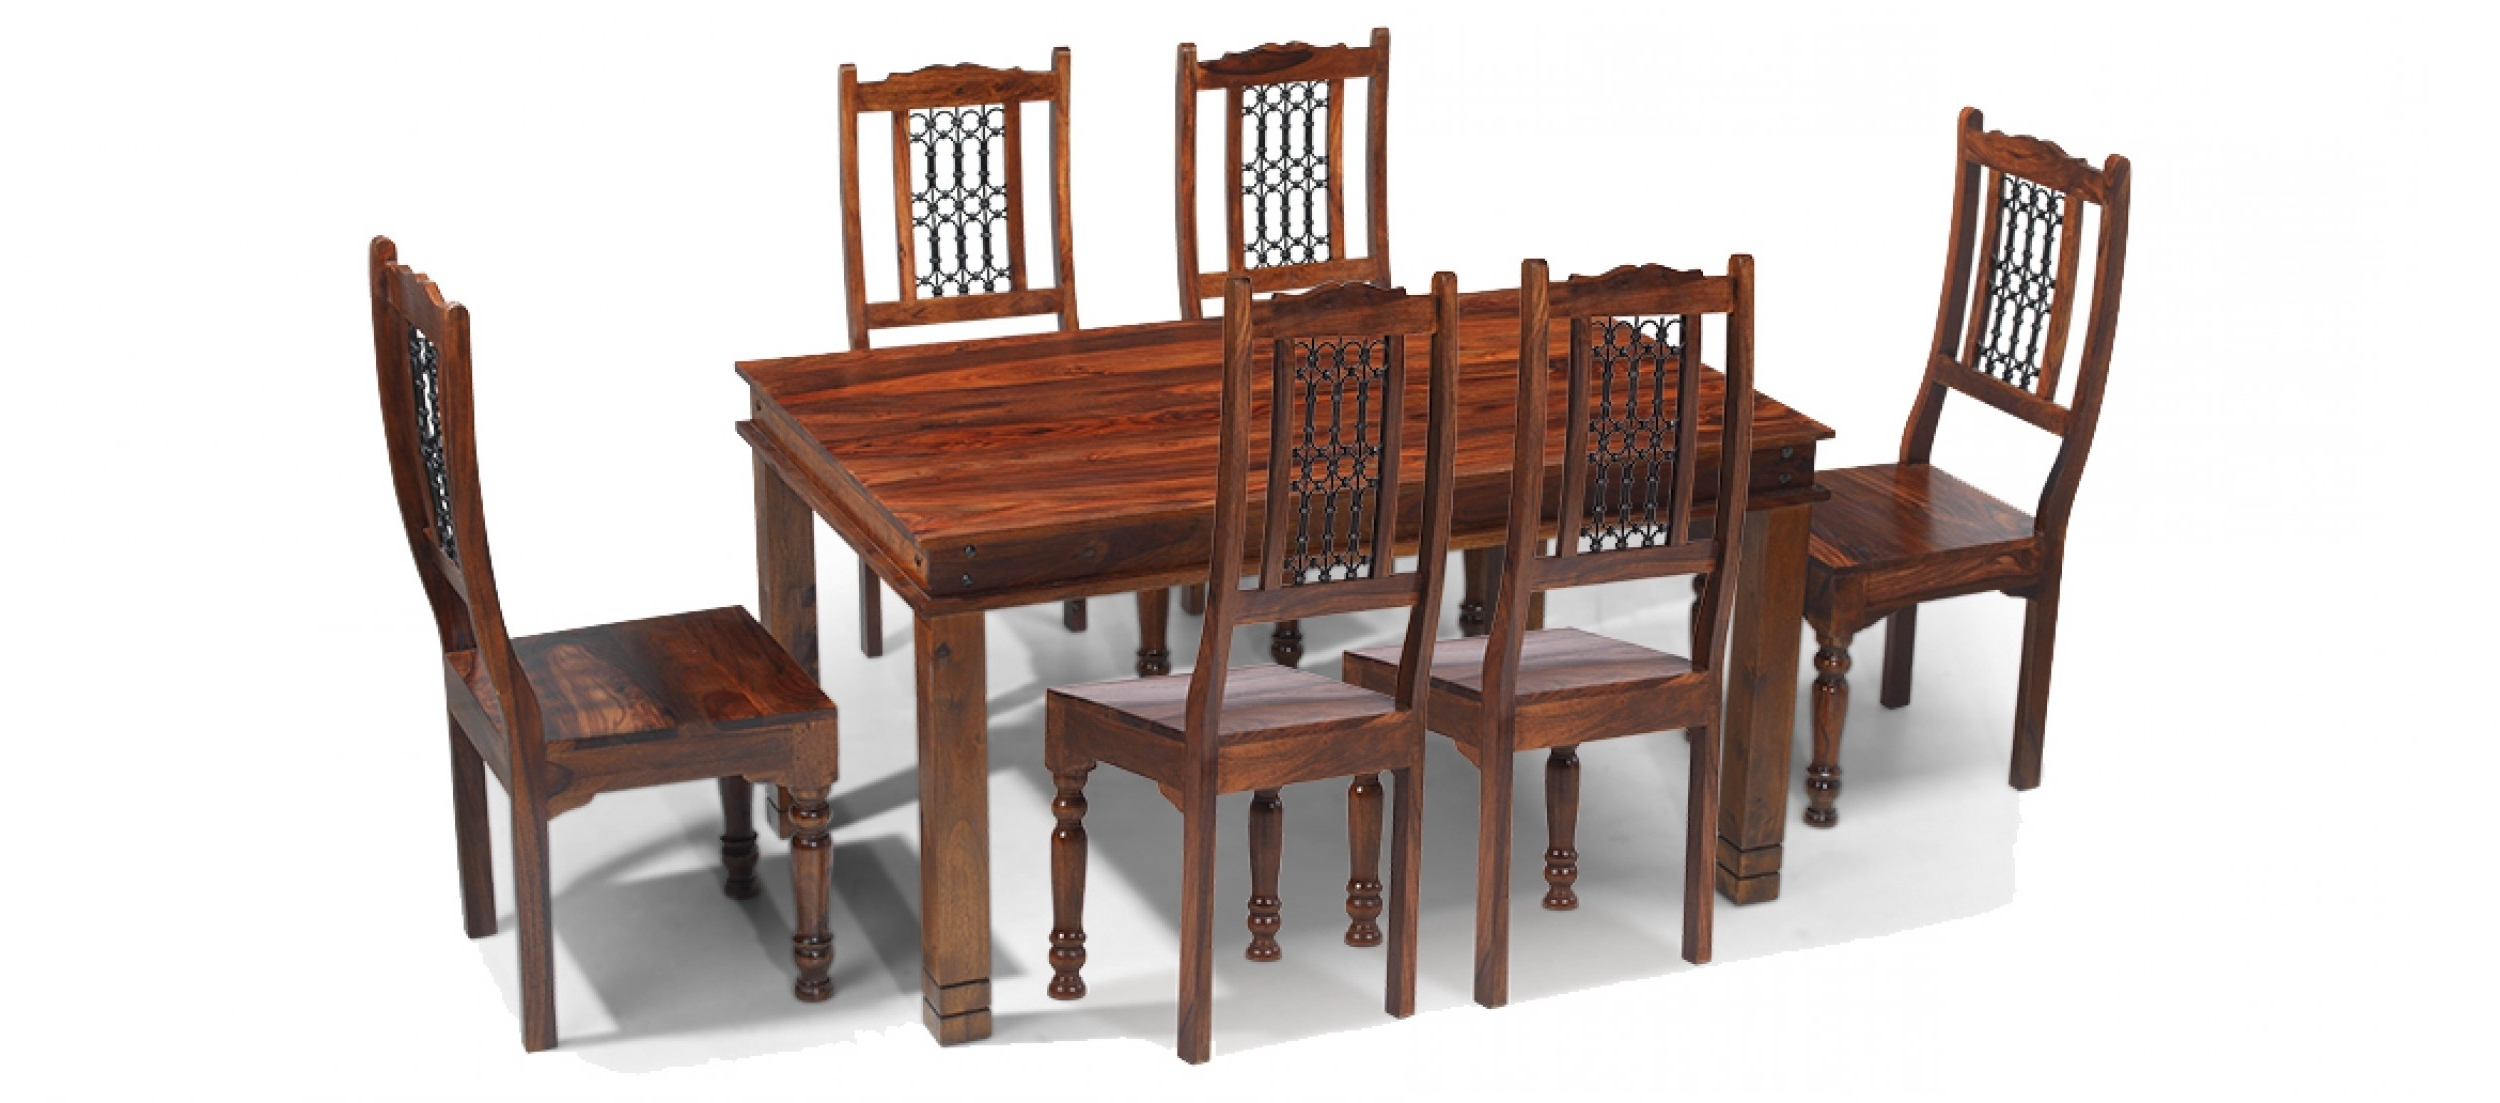 Quercus Living Intended For Oak Dining Set 6 Chairs (View 21 of 25)